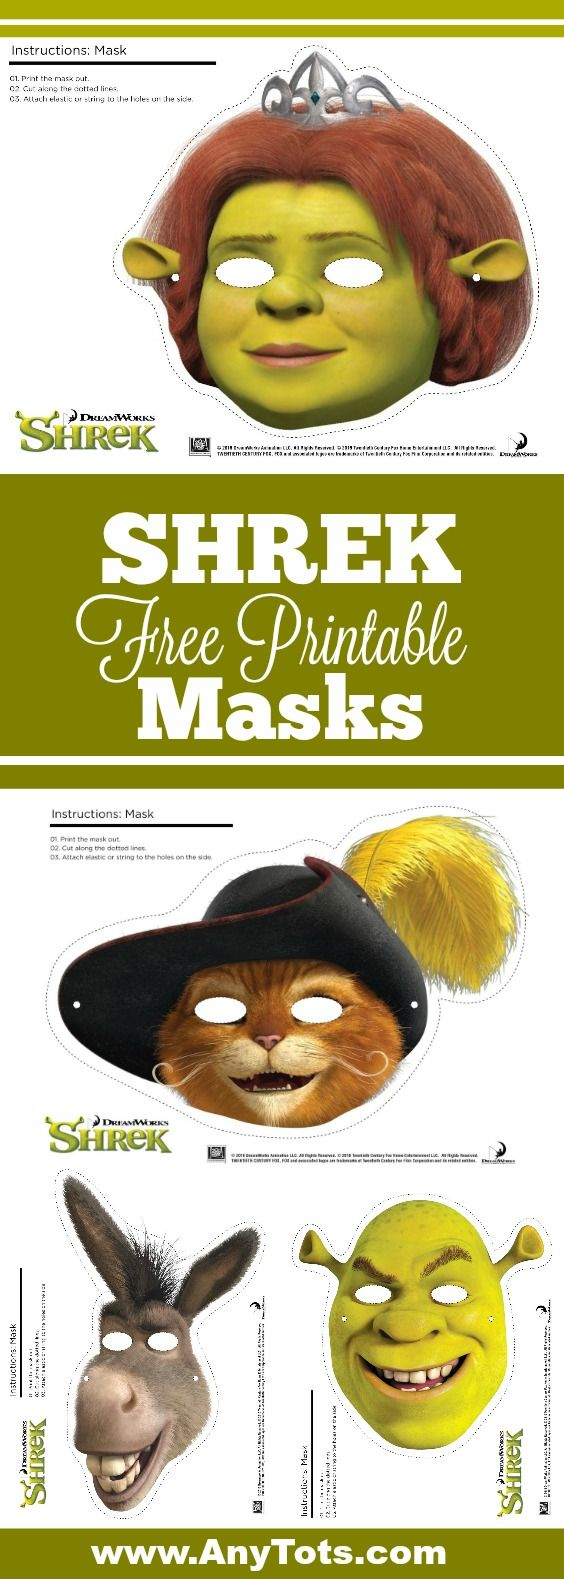 Halloween masks to print off at home! Choose from Princess Fiona, Shrek, Donkey or Puss in boots? Free printables!